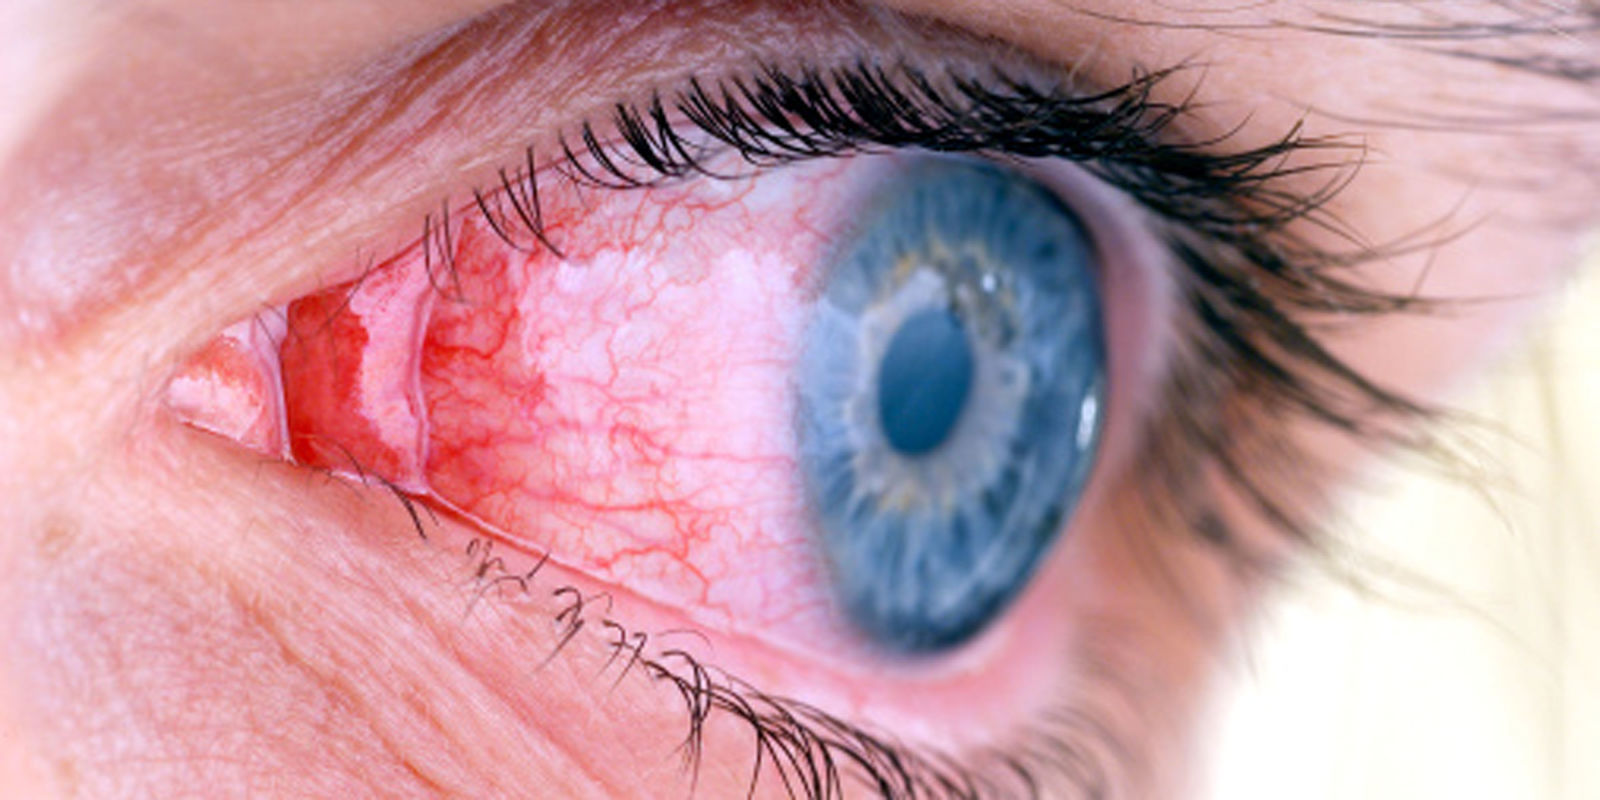 03 How To Prevent Conjunctivitis